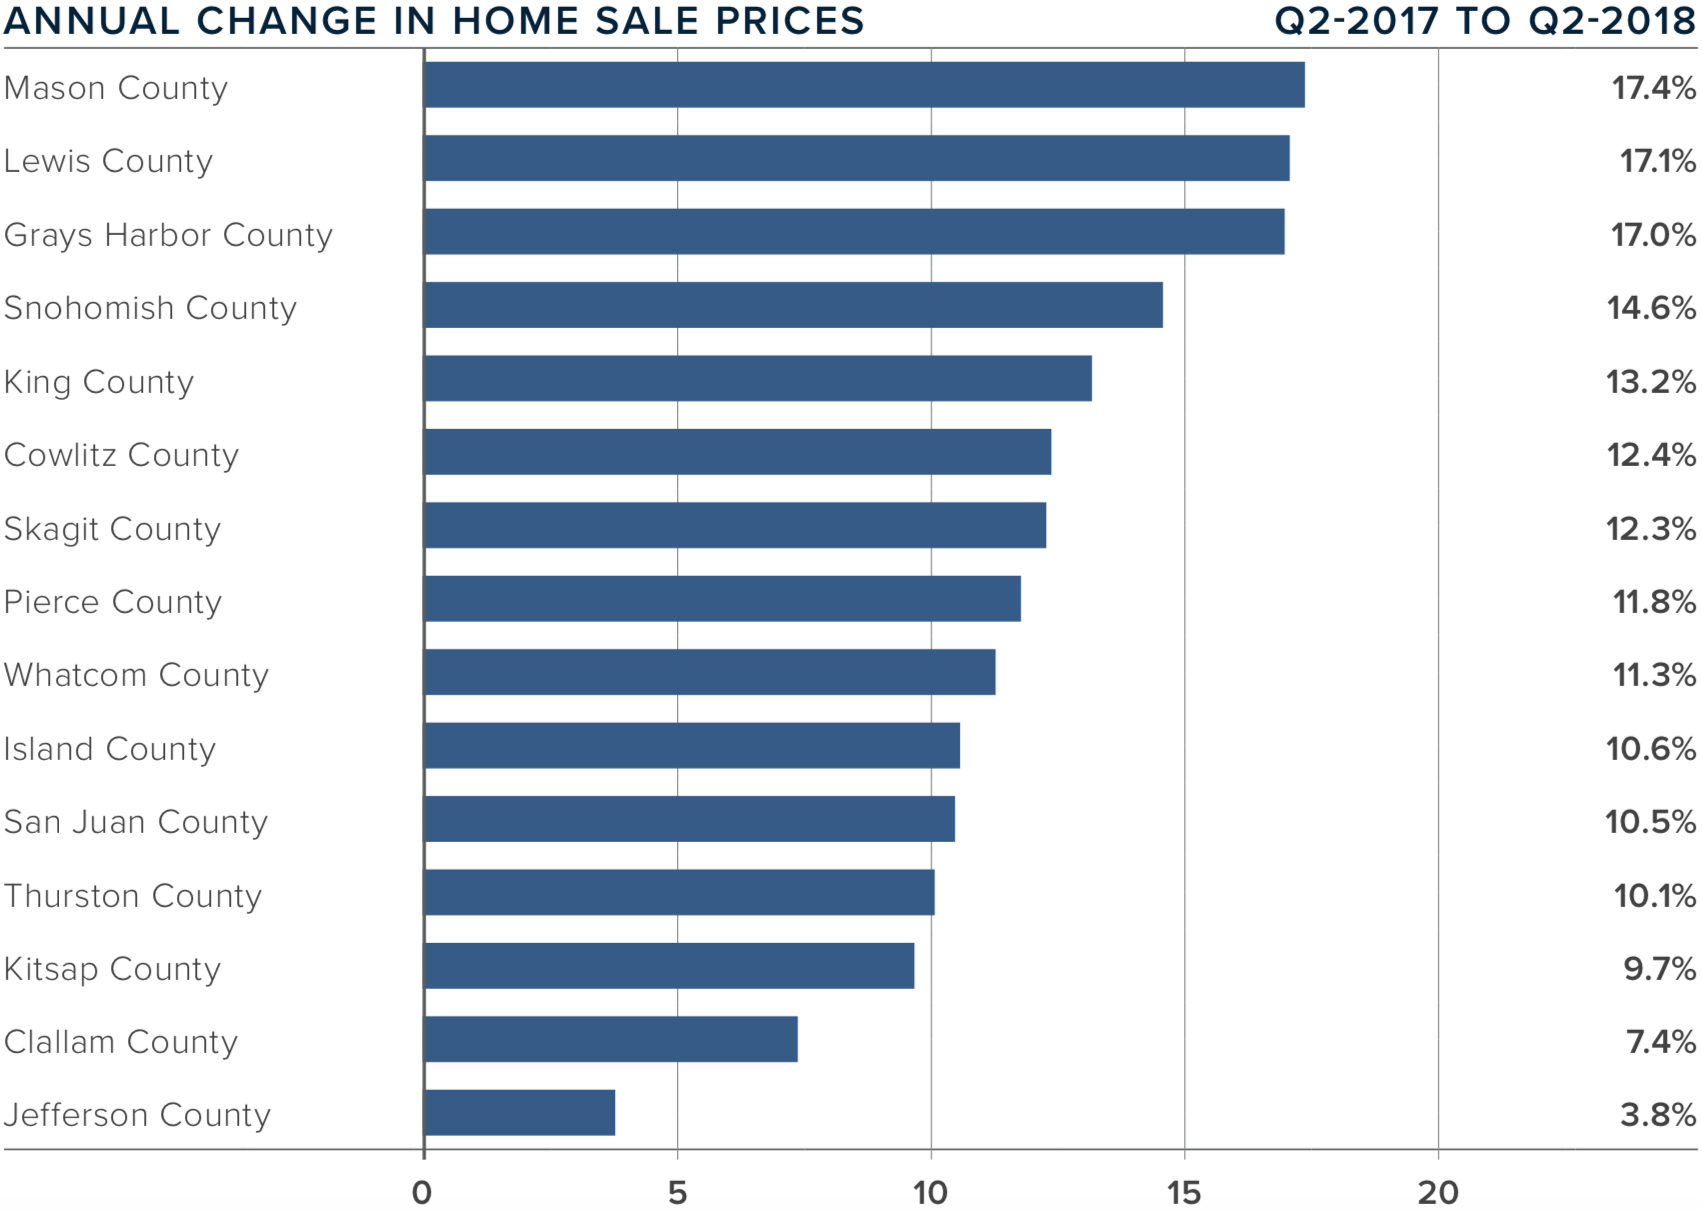 Western Washington Matthew Gardner Real Estate Market Update Q2 July 2018 Gina Madeya Annual Change 1